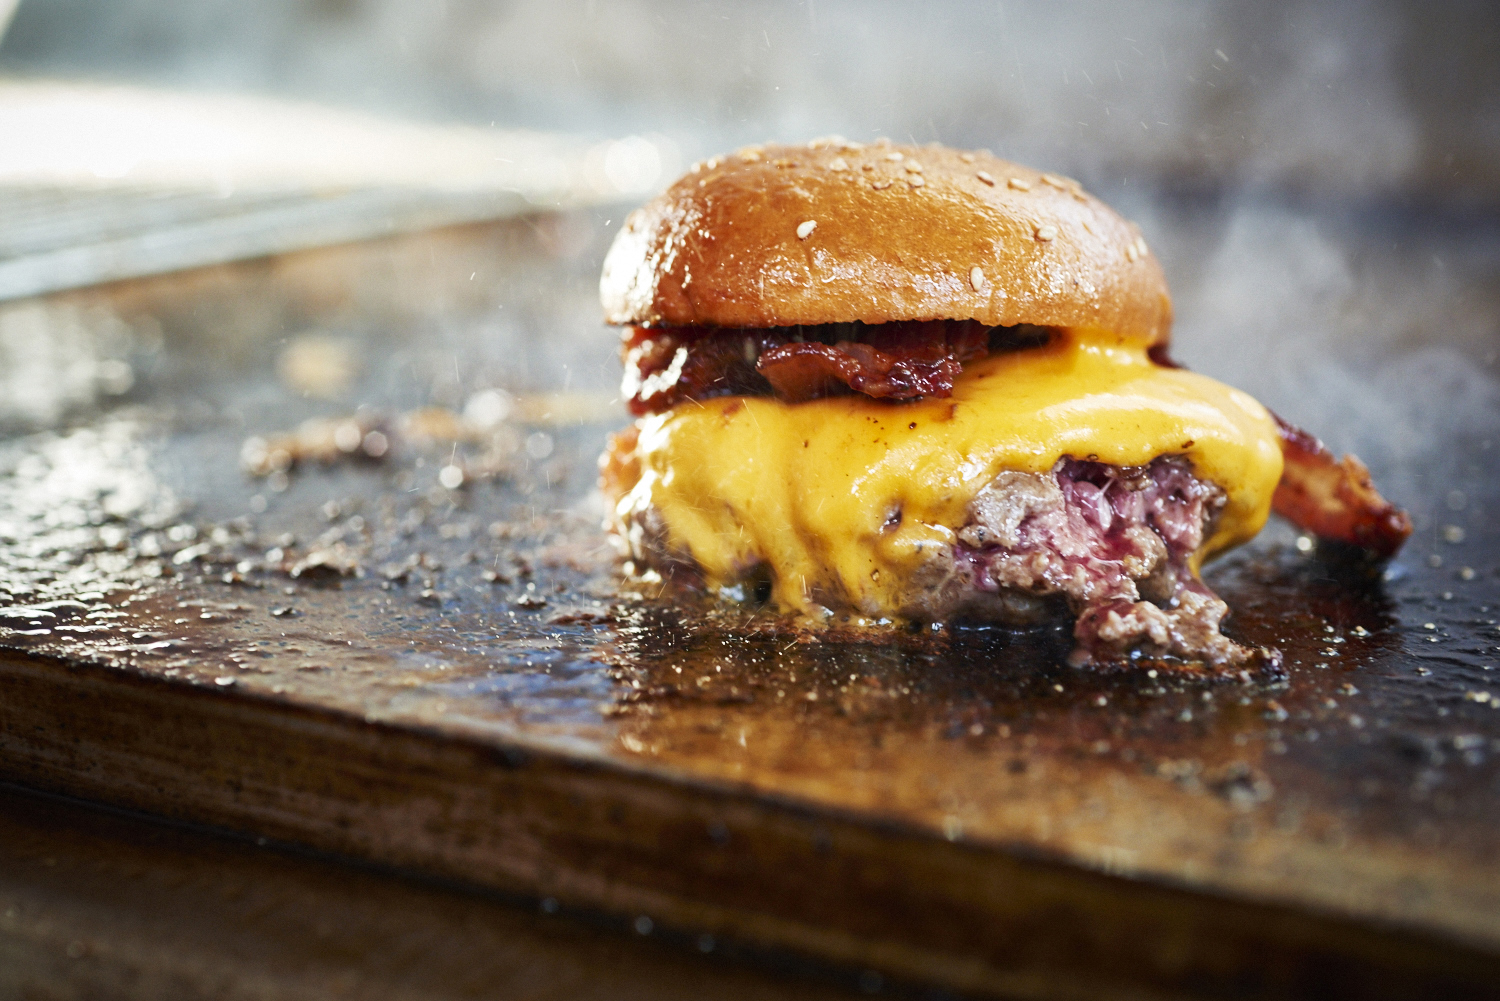 food-photographer-london-photography-drinks-director-table-top-tabletop-advertising-editorial-packaging-pr-foodporn-national-burger-day-street-feast-mr-hyde-hydes-dalston-yard-burgers-cheeseburgers-mother-flippers-cheese-bacon